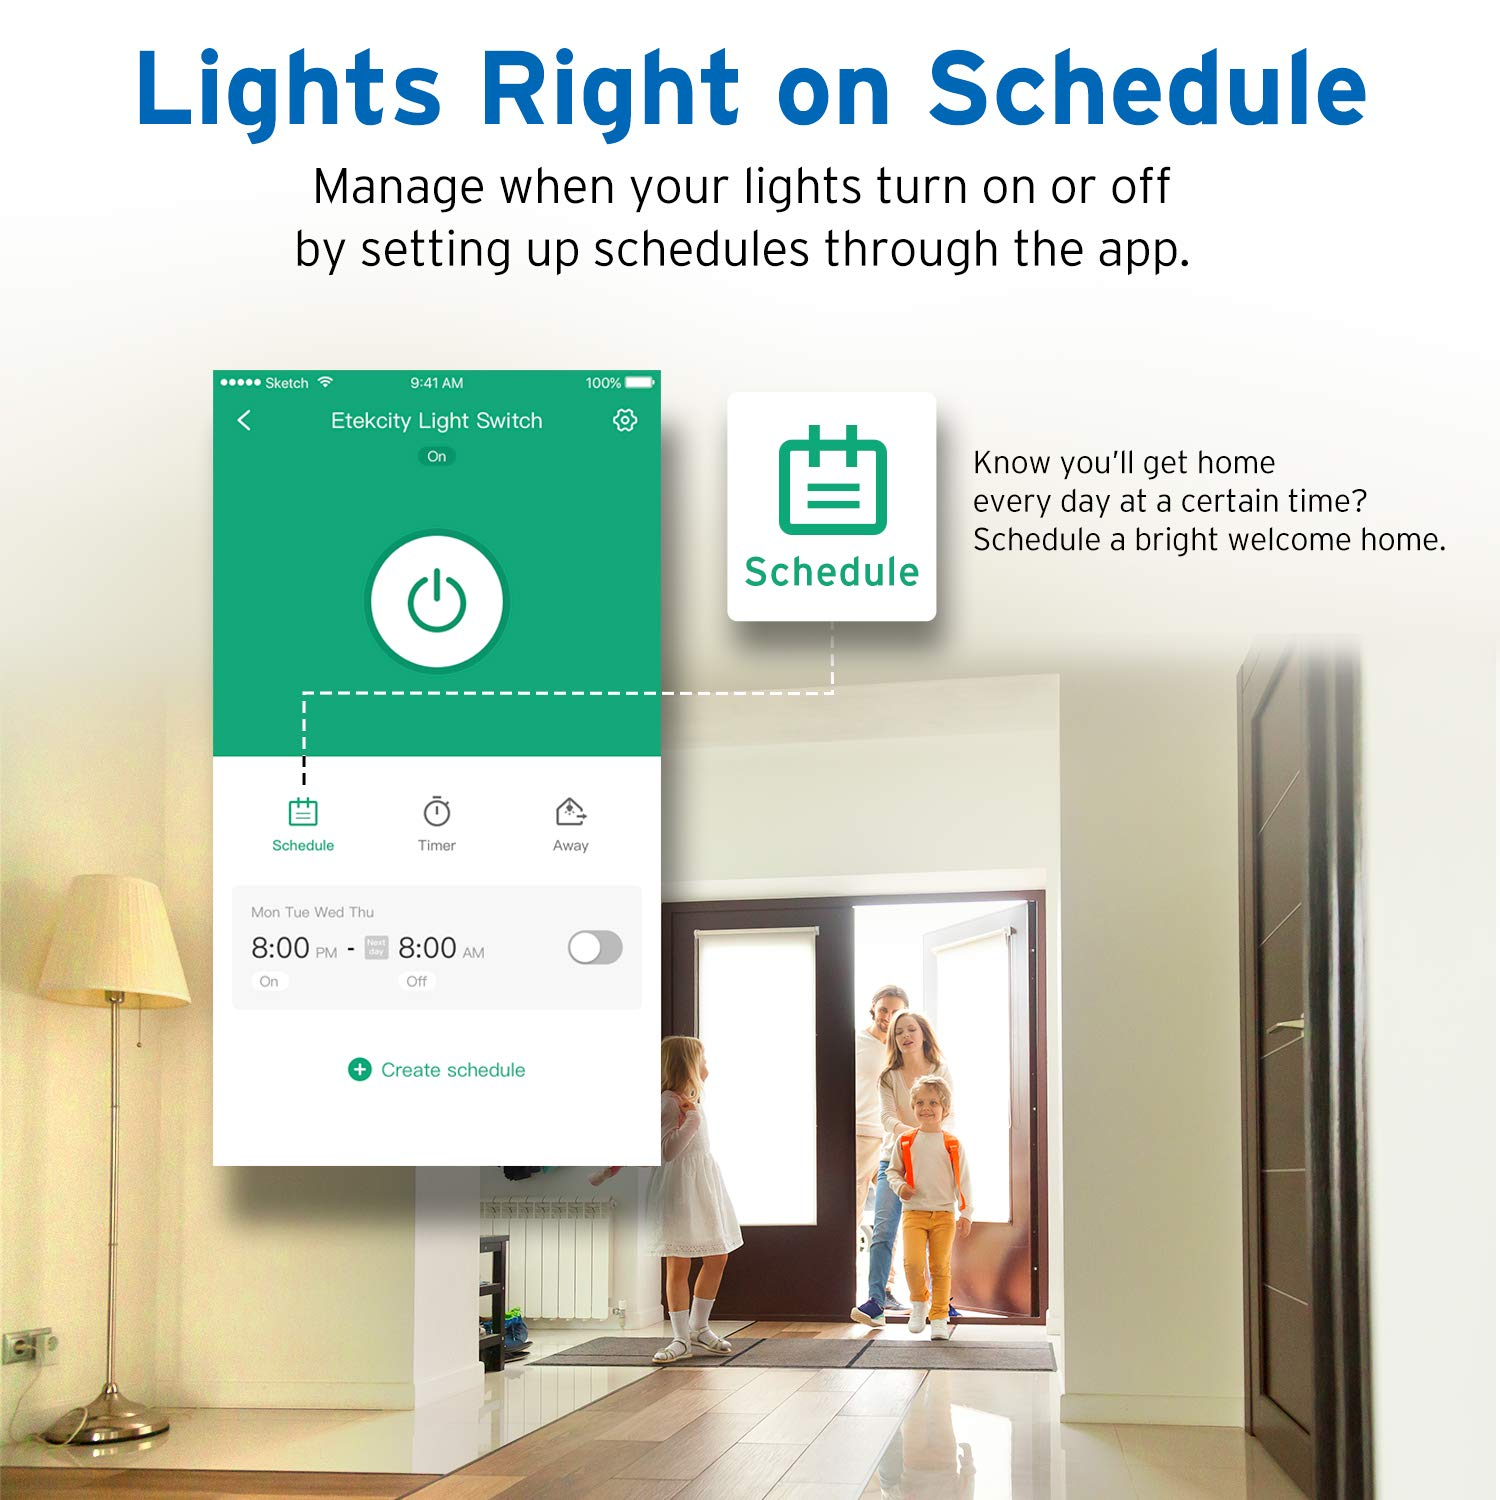 Etekcity Smart WiFi Light Switch, Wireless Remote Control from Anywhere, Schedule Your Home, No Hub Required, Works with Alexa and Google Home, Single Pole Only, White, 15A/1800W, ETL Listed by Etekcity (Image #3)